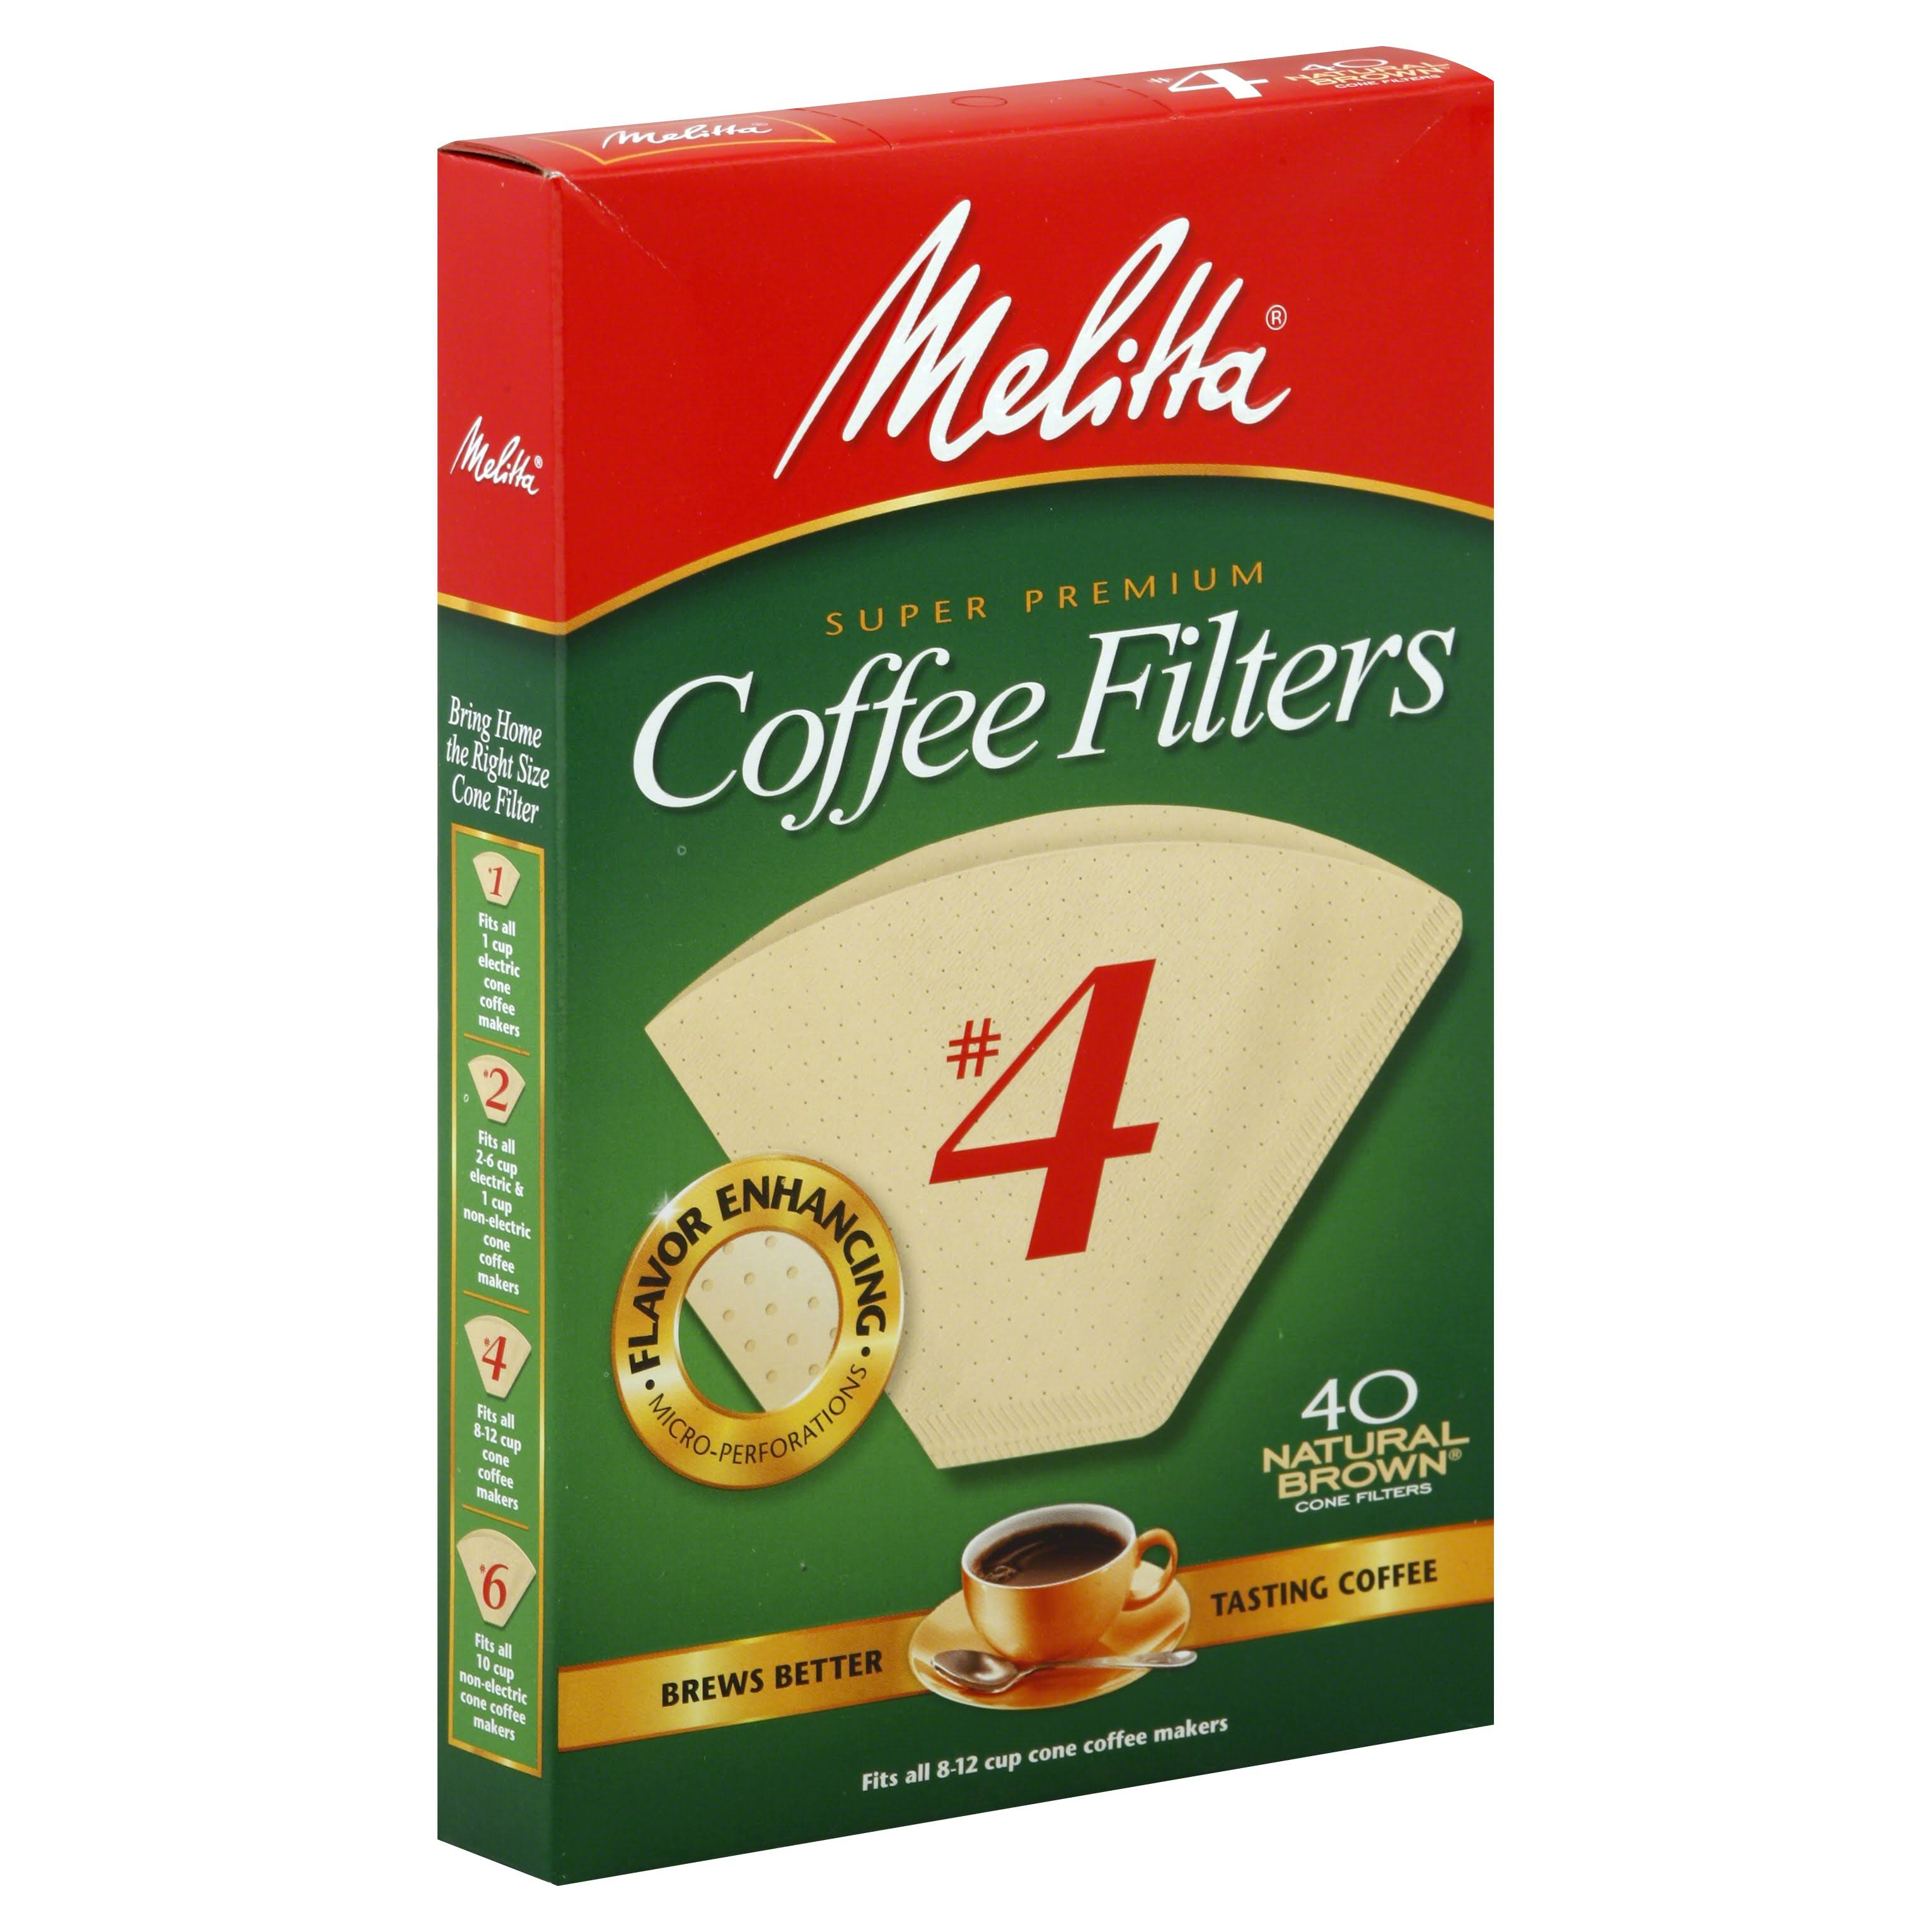 Melitta Cone Coffee Filters - #4, Natural Brown, 40 Count